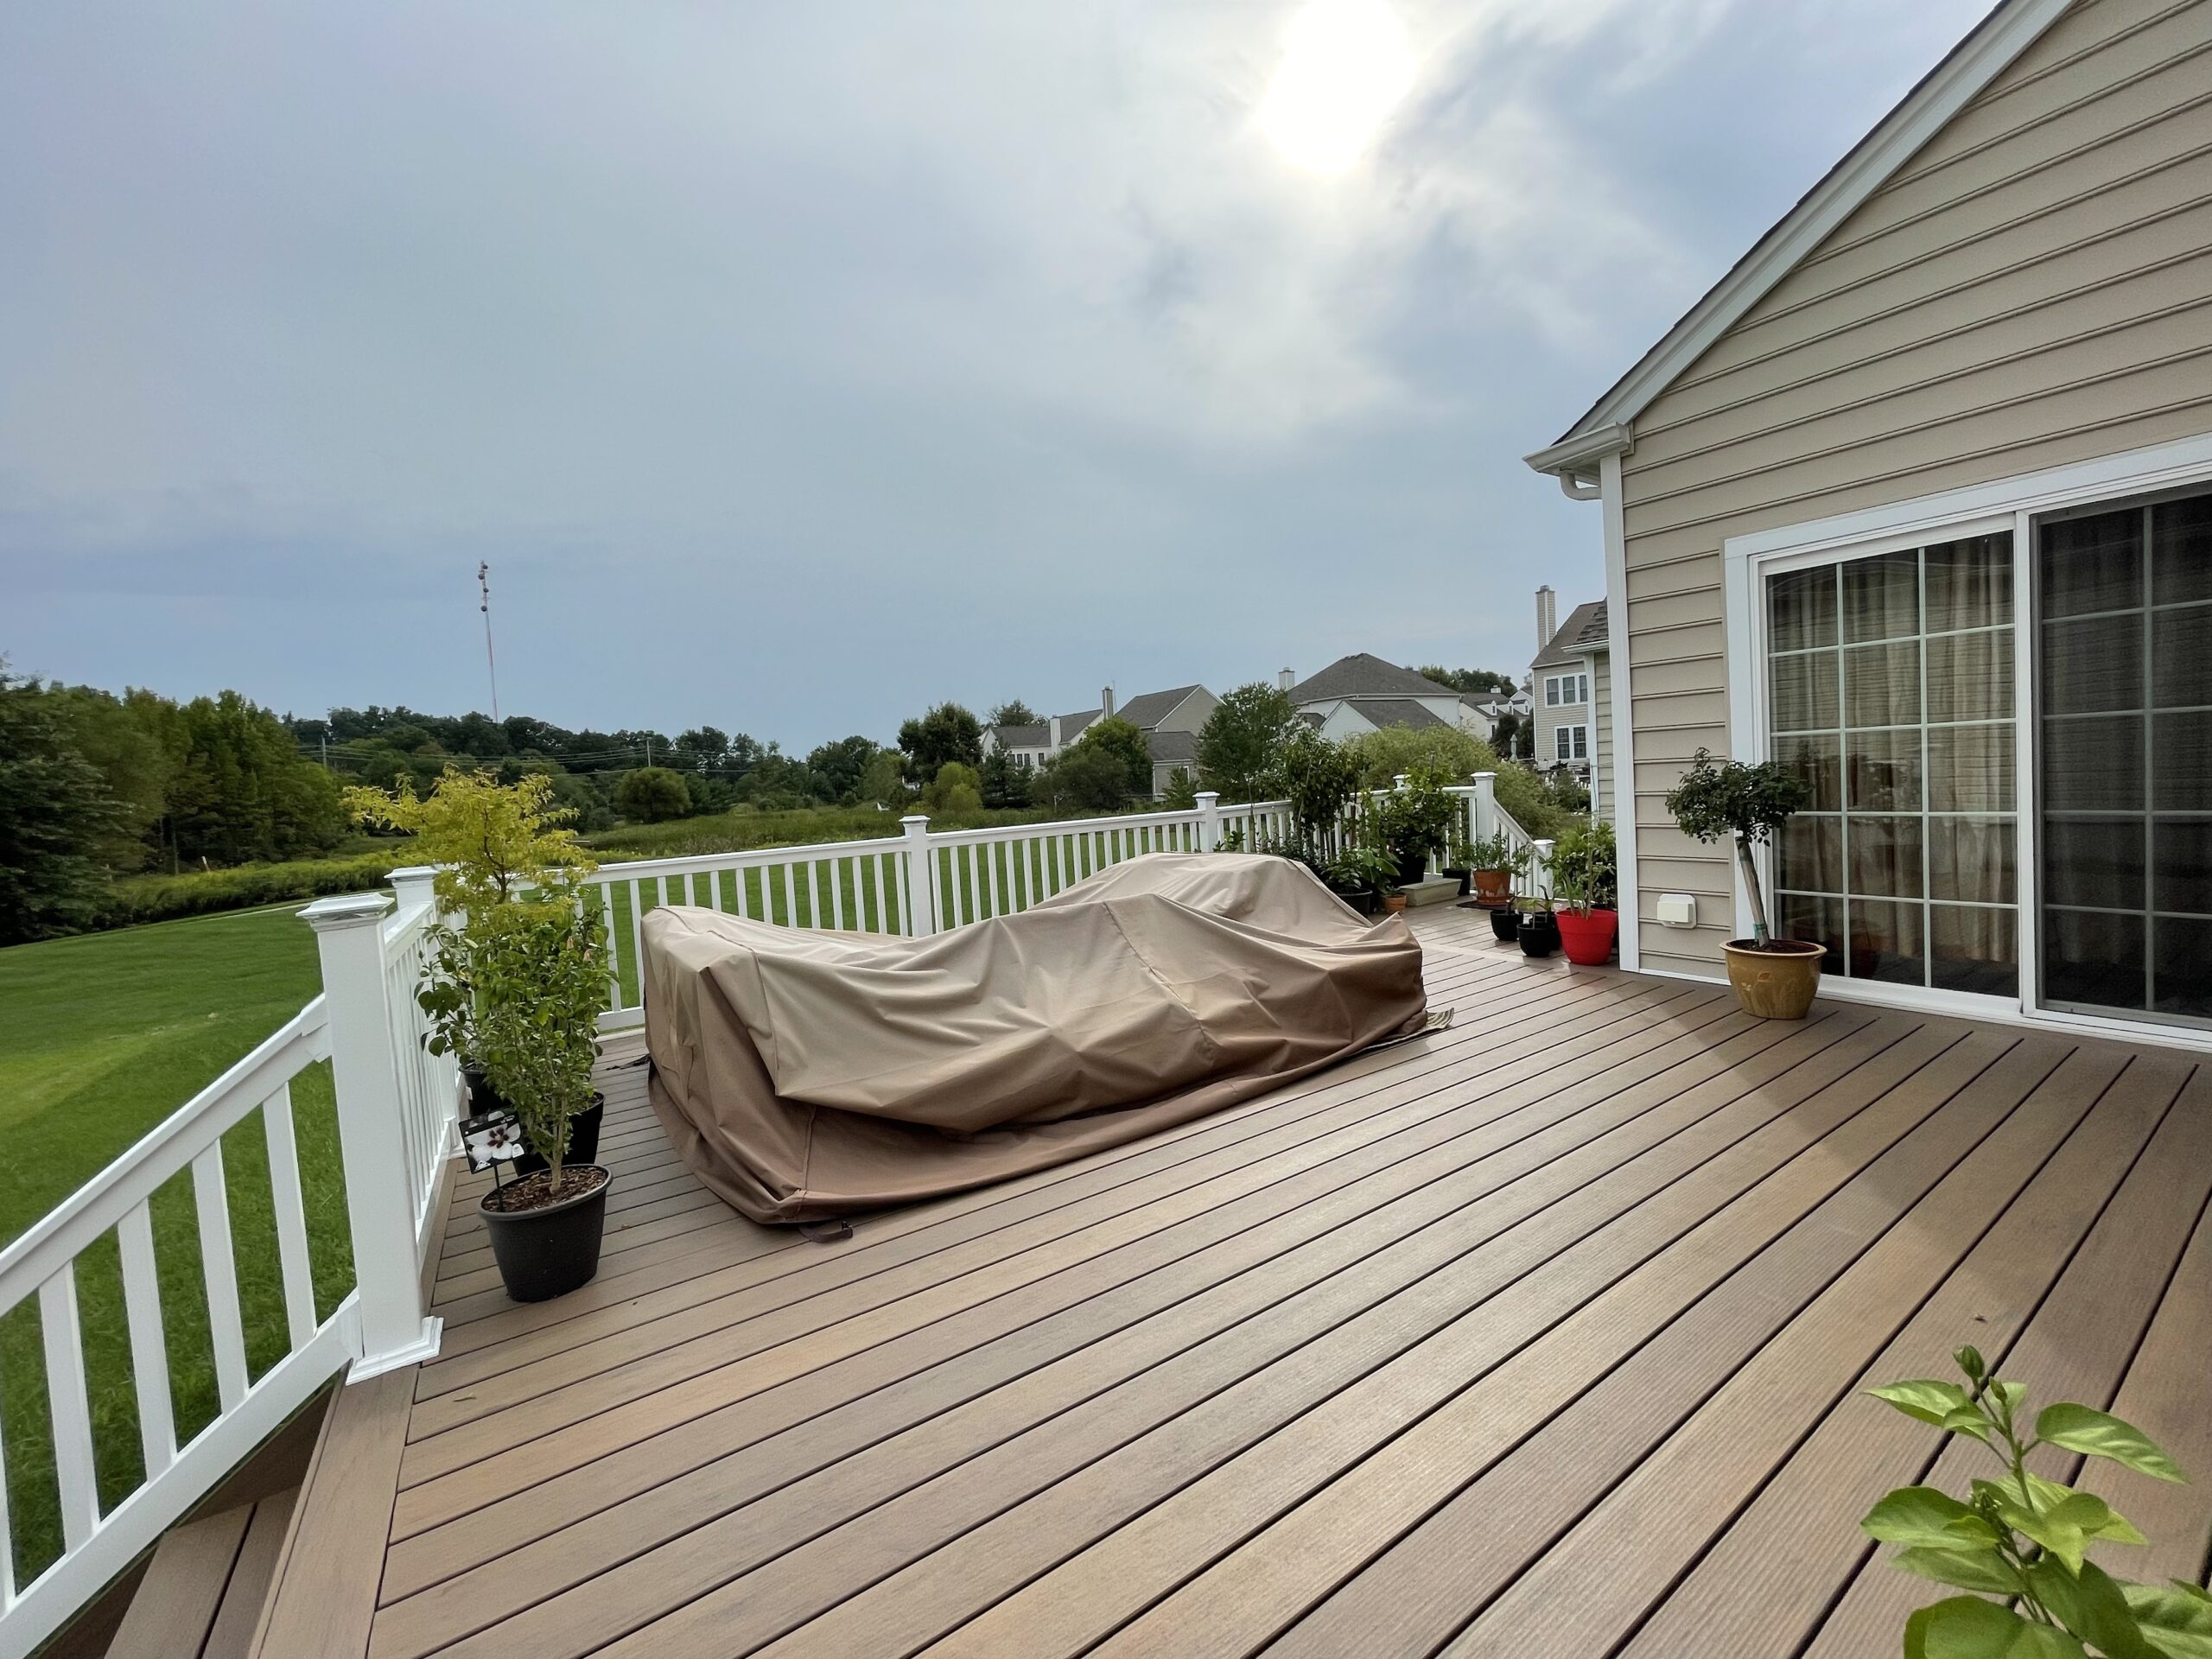 Residential Construction Company for Decking In Chester Springs Chester County PA